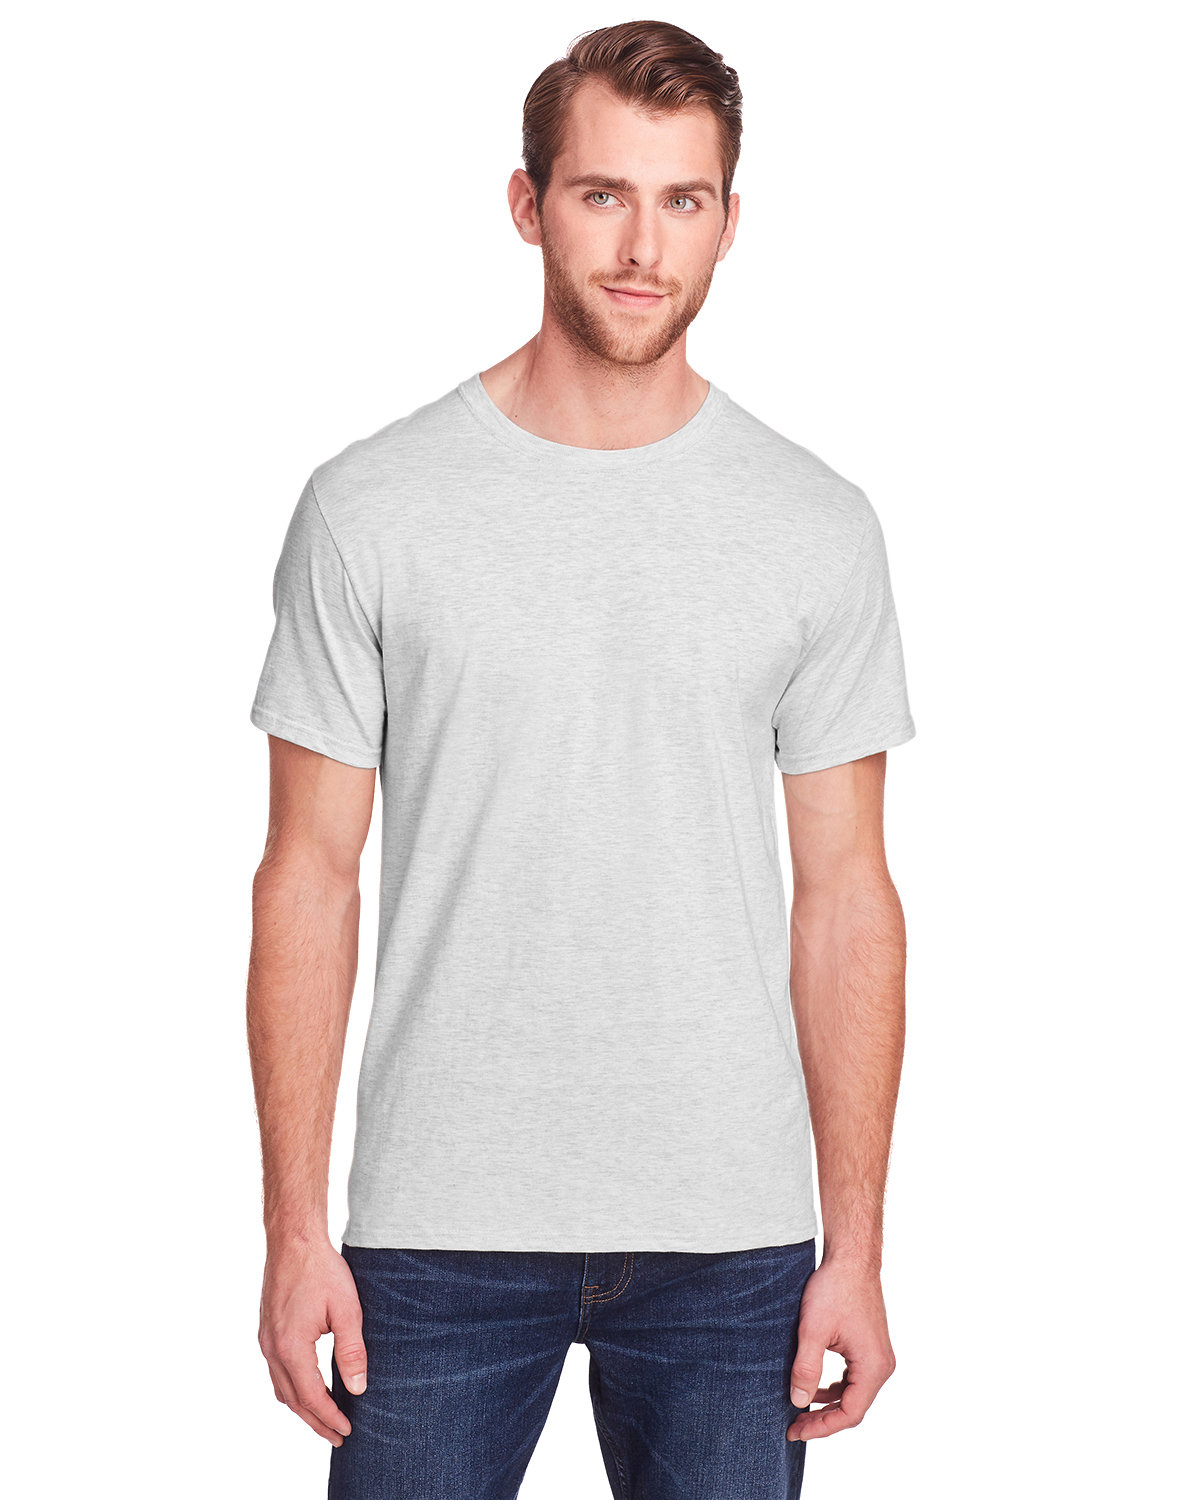 Fruit of the Loom Adult ICONIC™ T-Shirt OATMEAL HEATHER